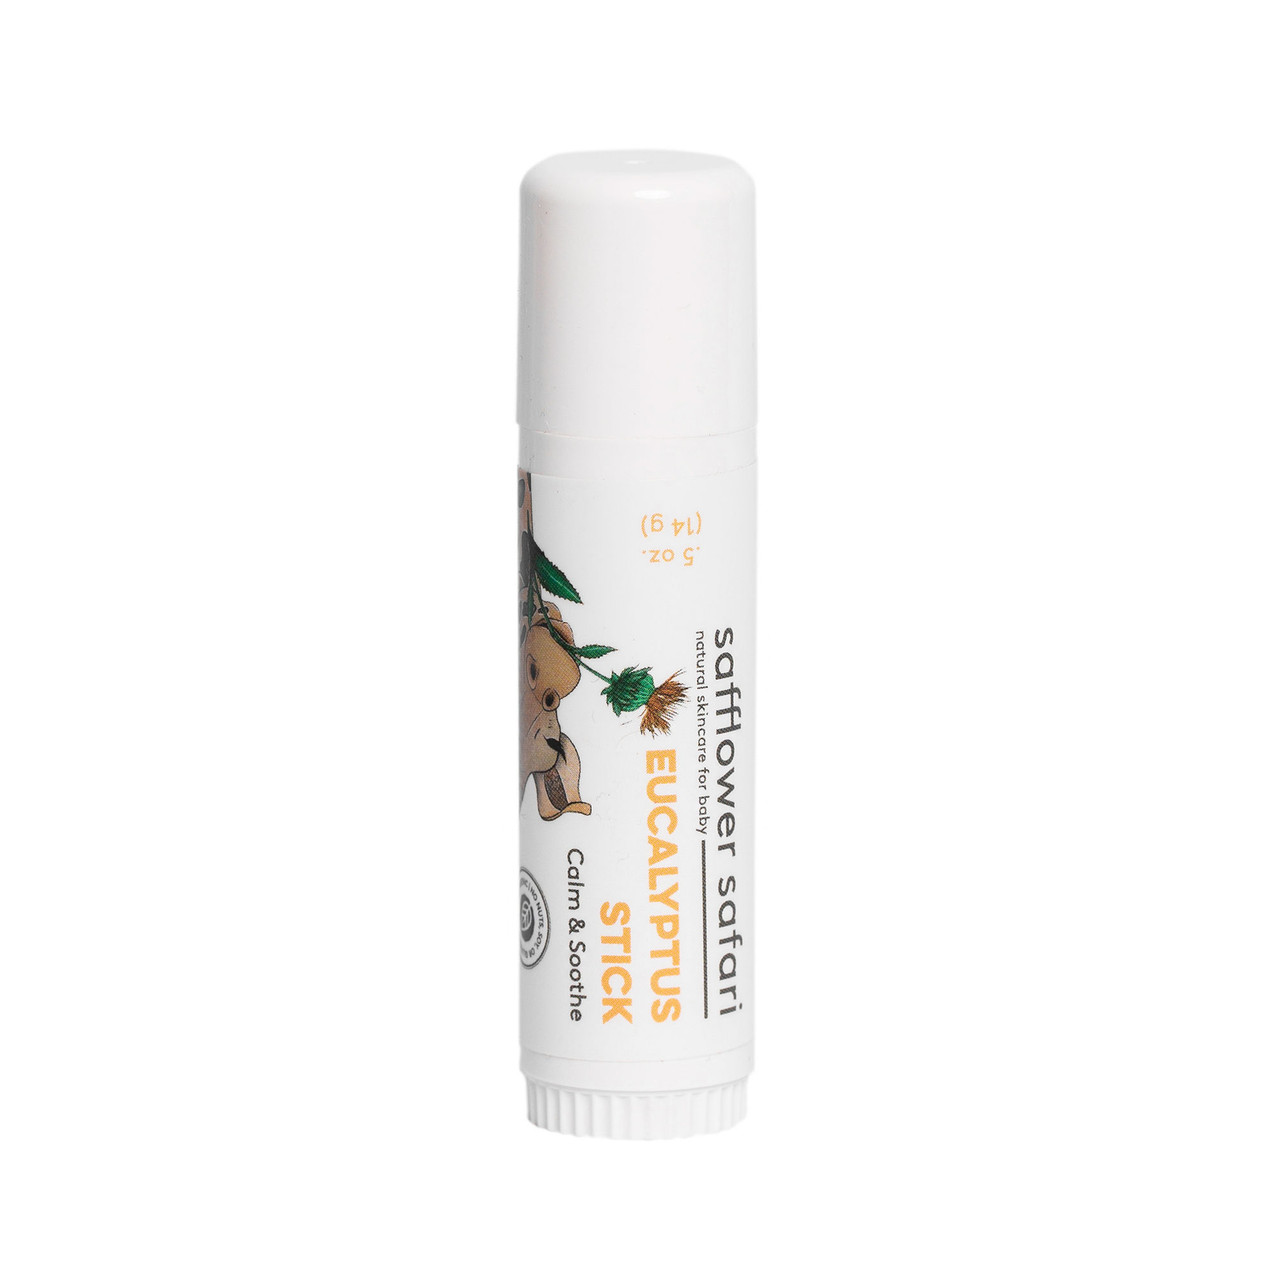 Eucalyptus Stick  - Herbal Balm to Soothe